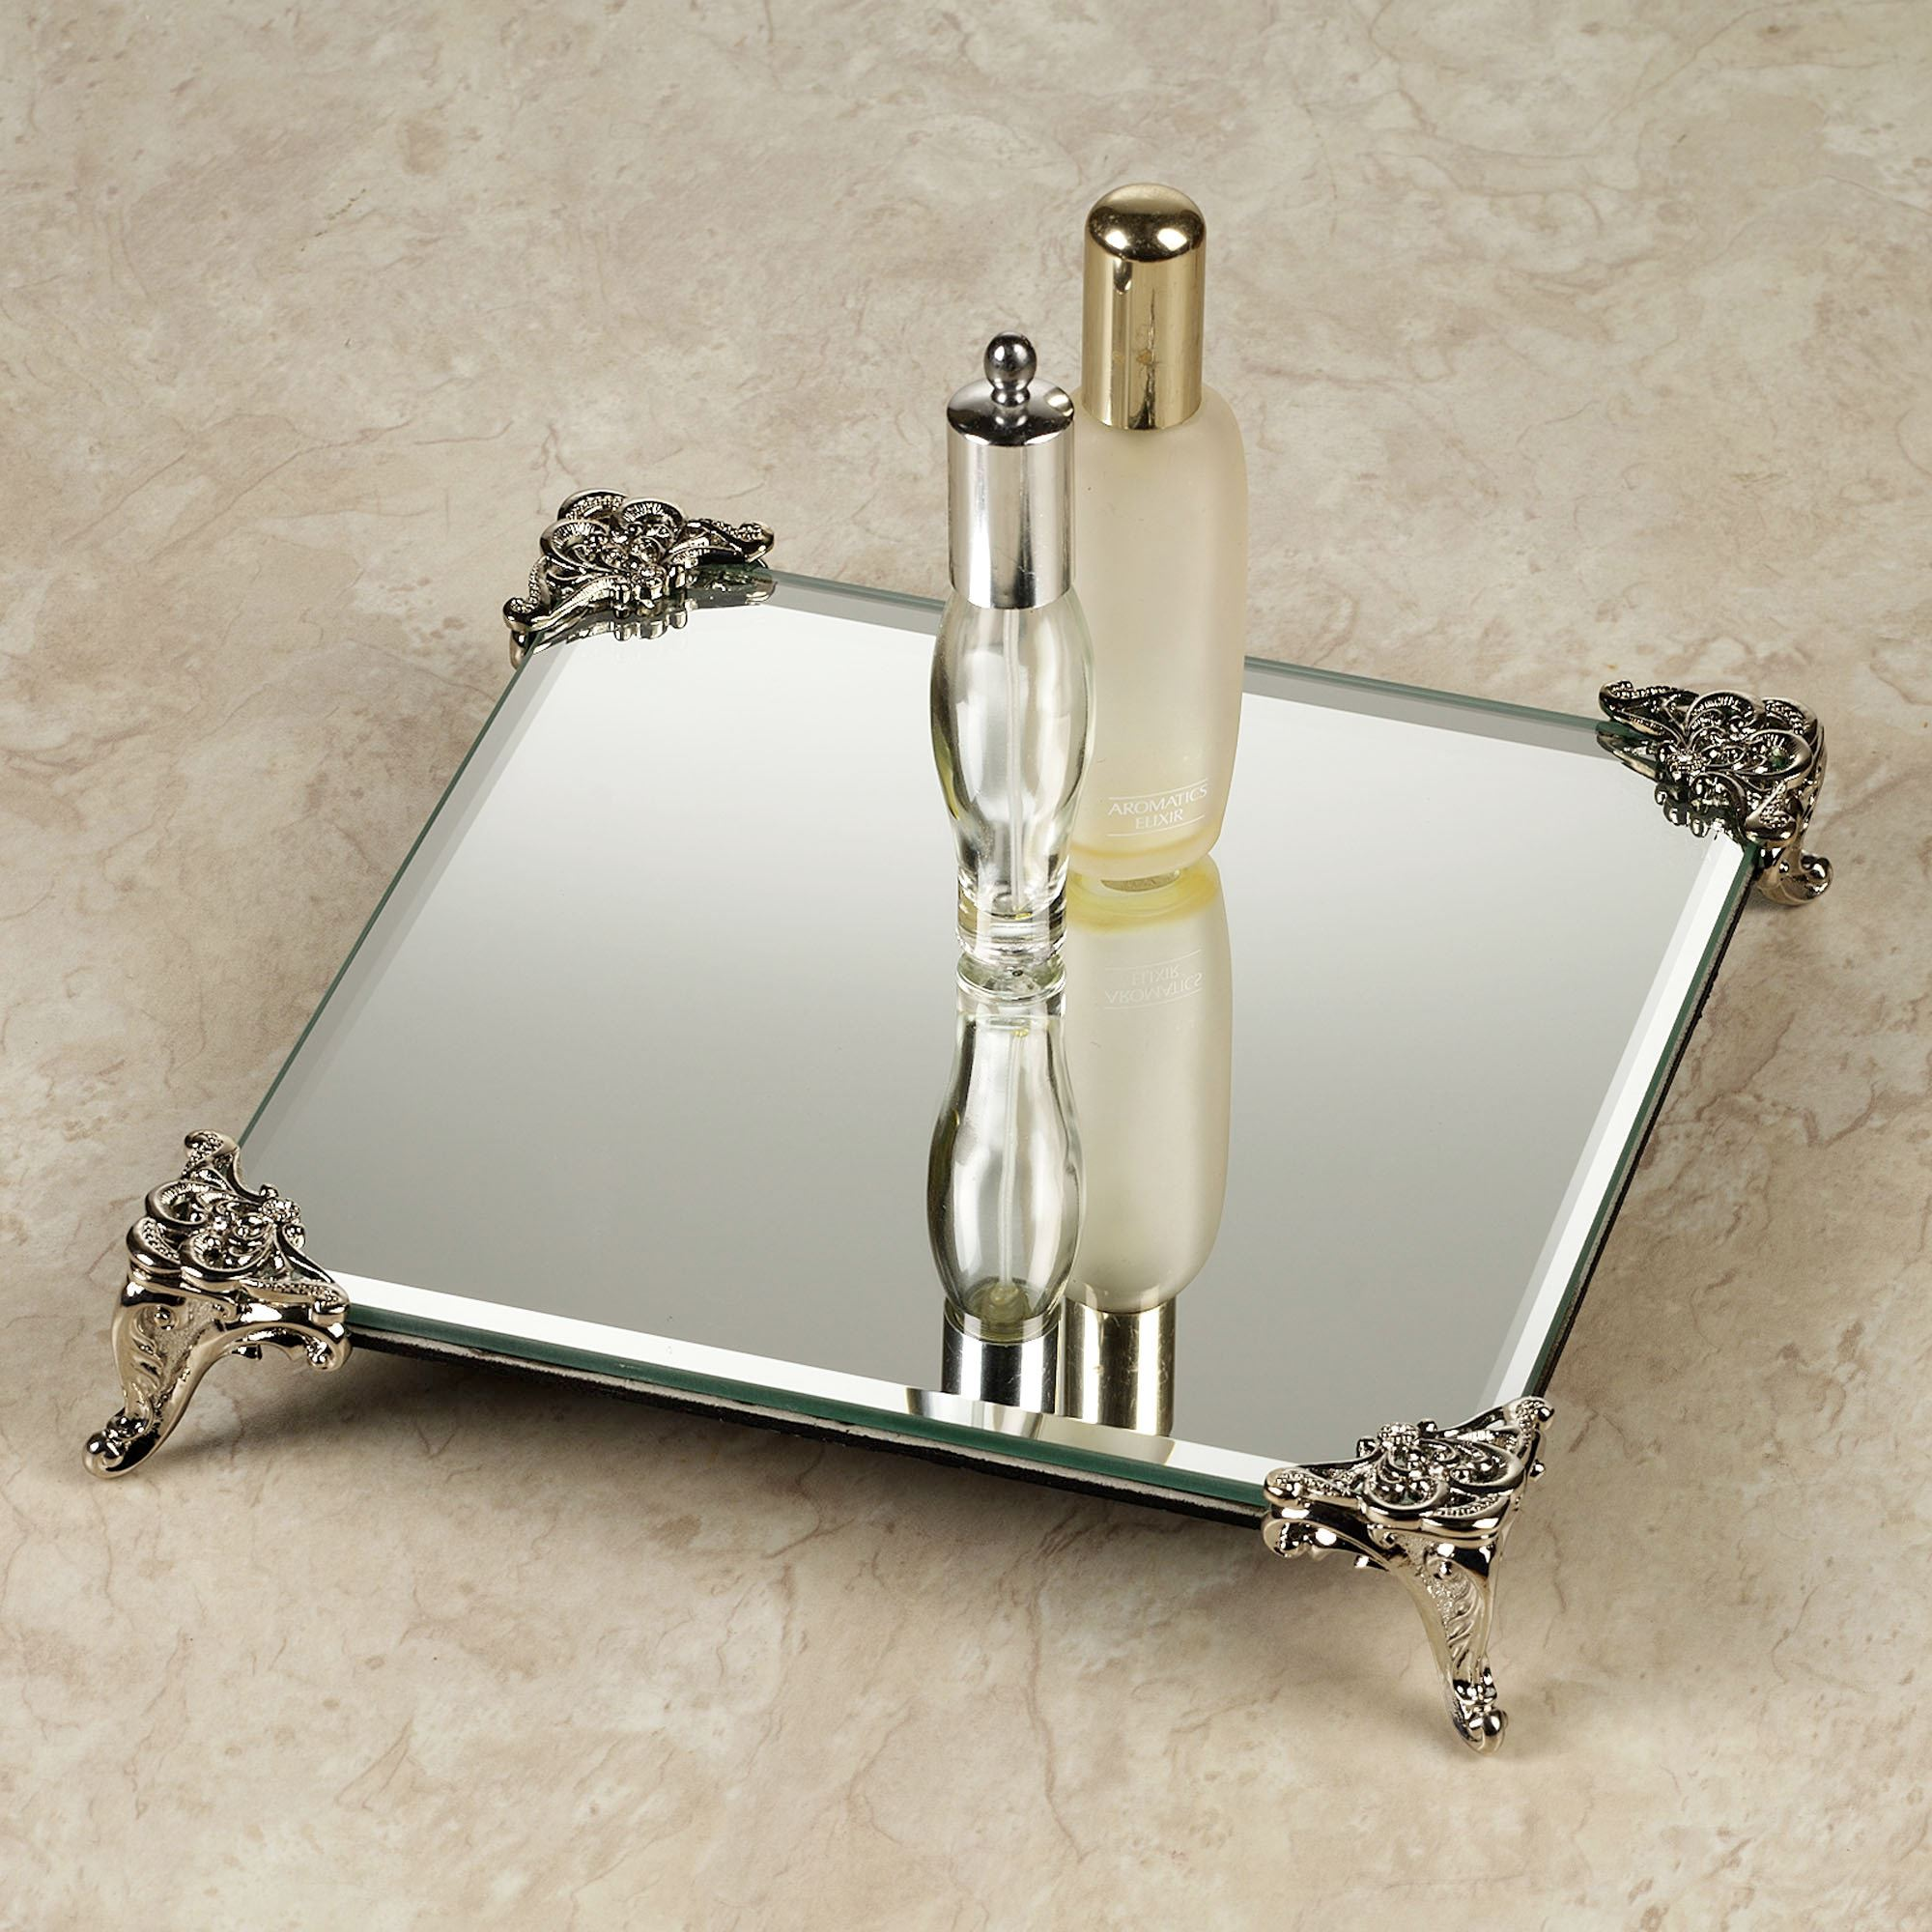 Amusing mirrored vanity tray